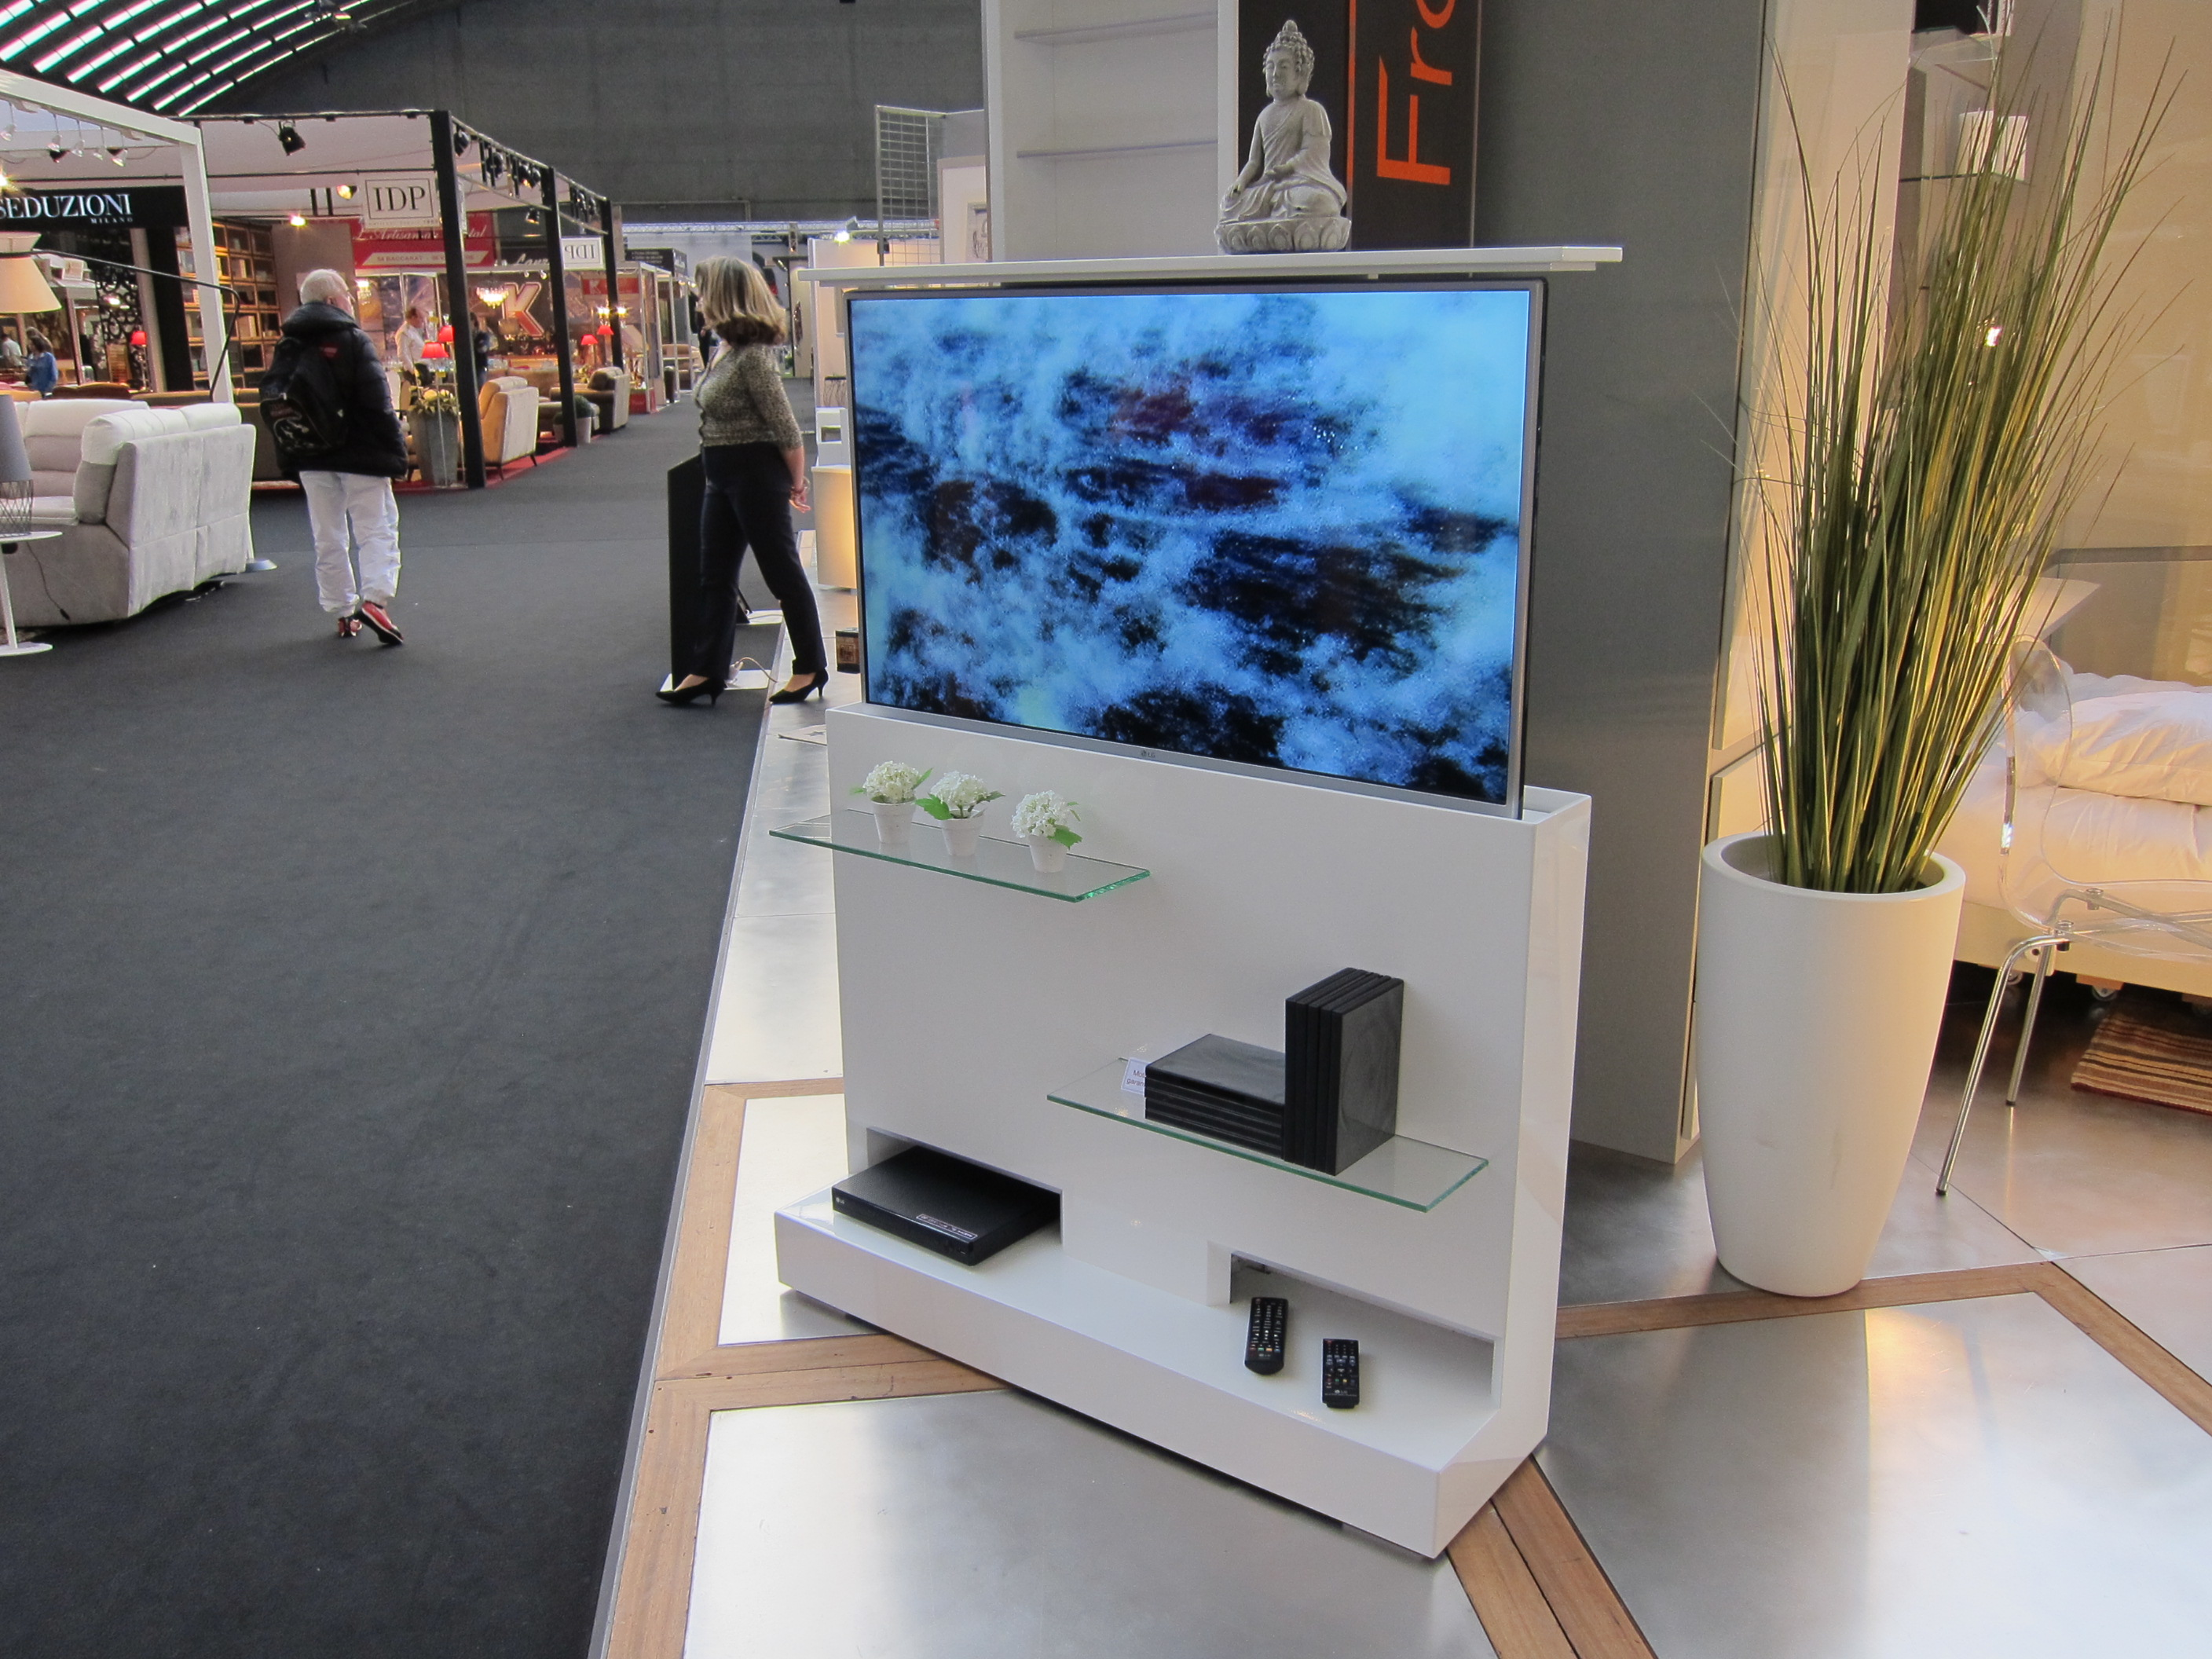 Meuble Avec Tv Encastrable - Le Mobilier Gain De Place Fran Ois Desile[mjhdah]https://www.cobra.fr/media/catalog/product/m/2/m2p2n1gl_3.png